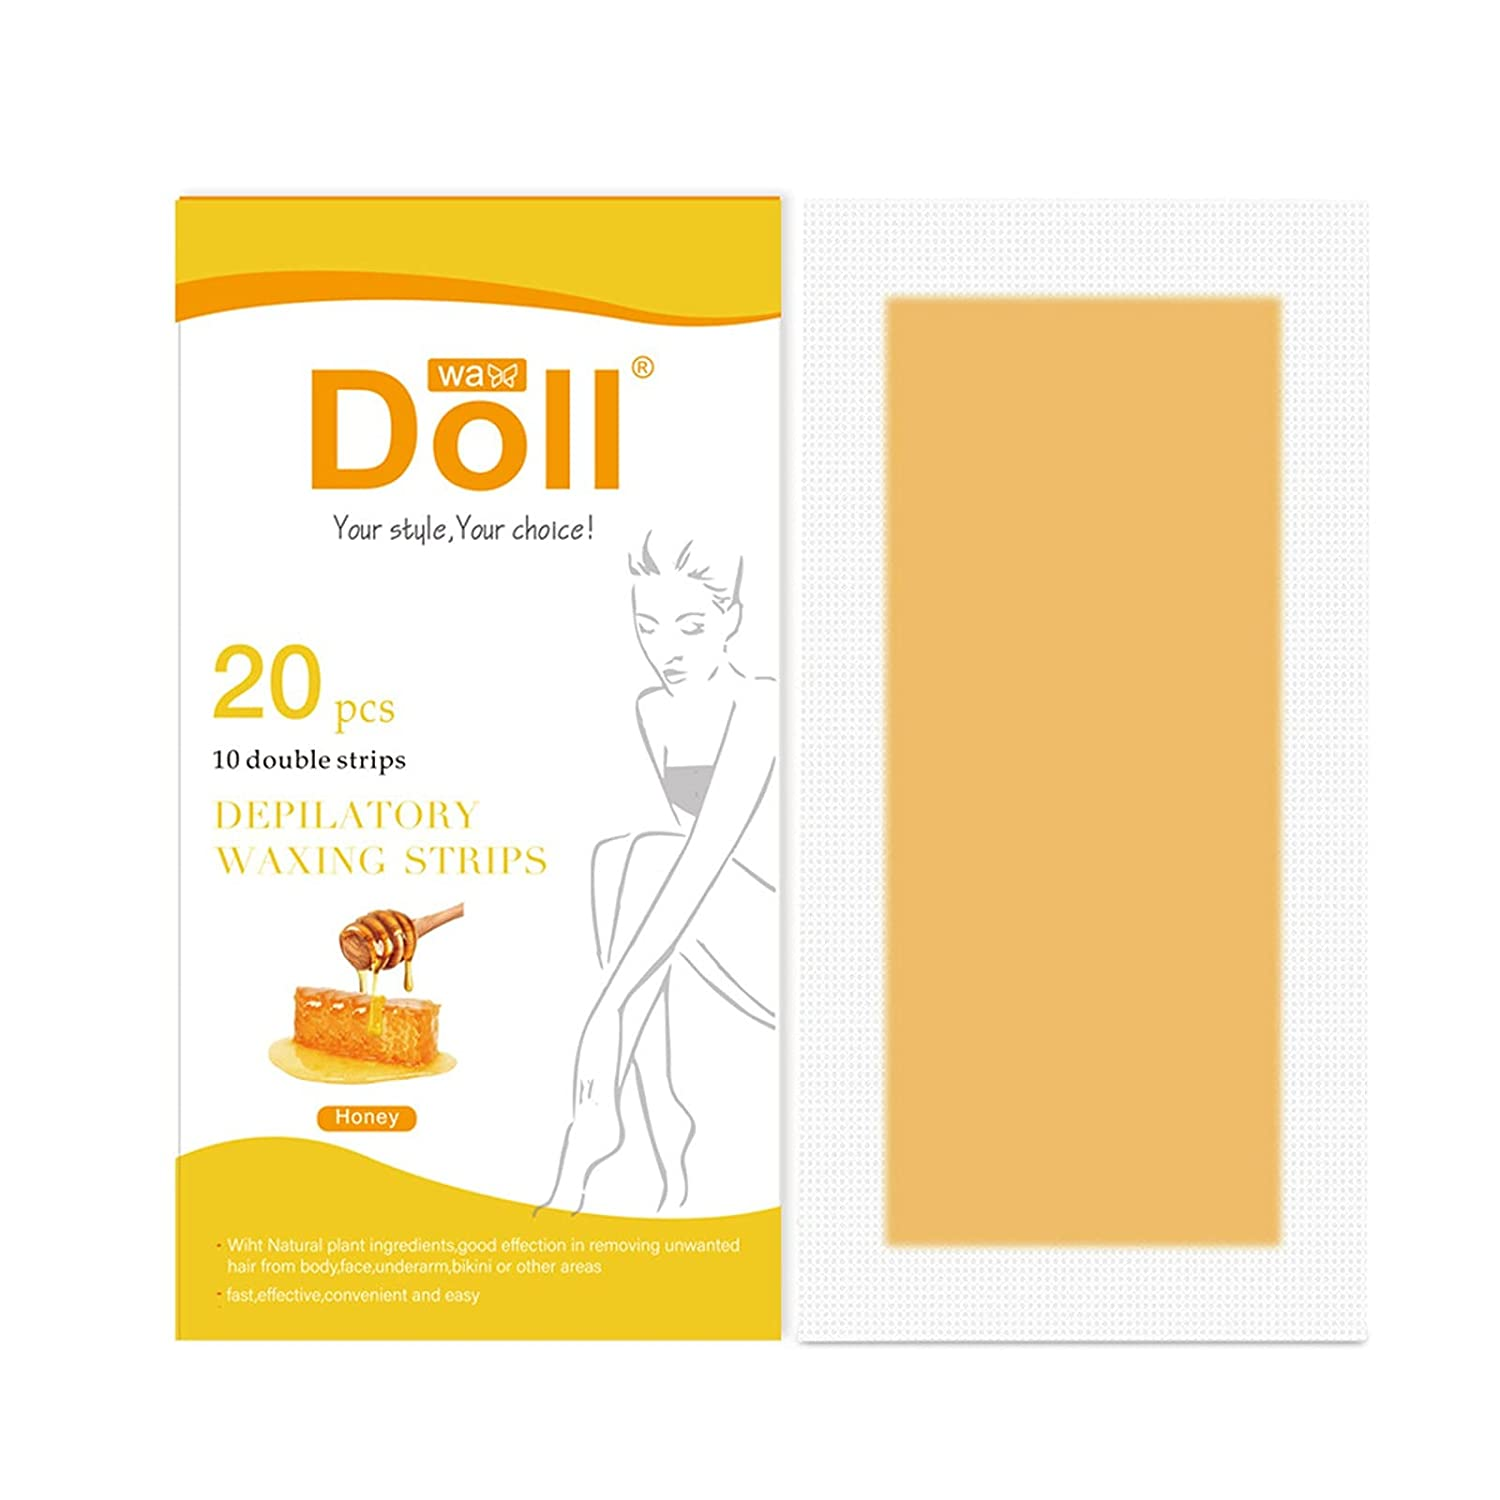 20 depot Wax Strips - Very popular Safe Rapid Waxing for Fa Removal Hair